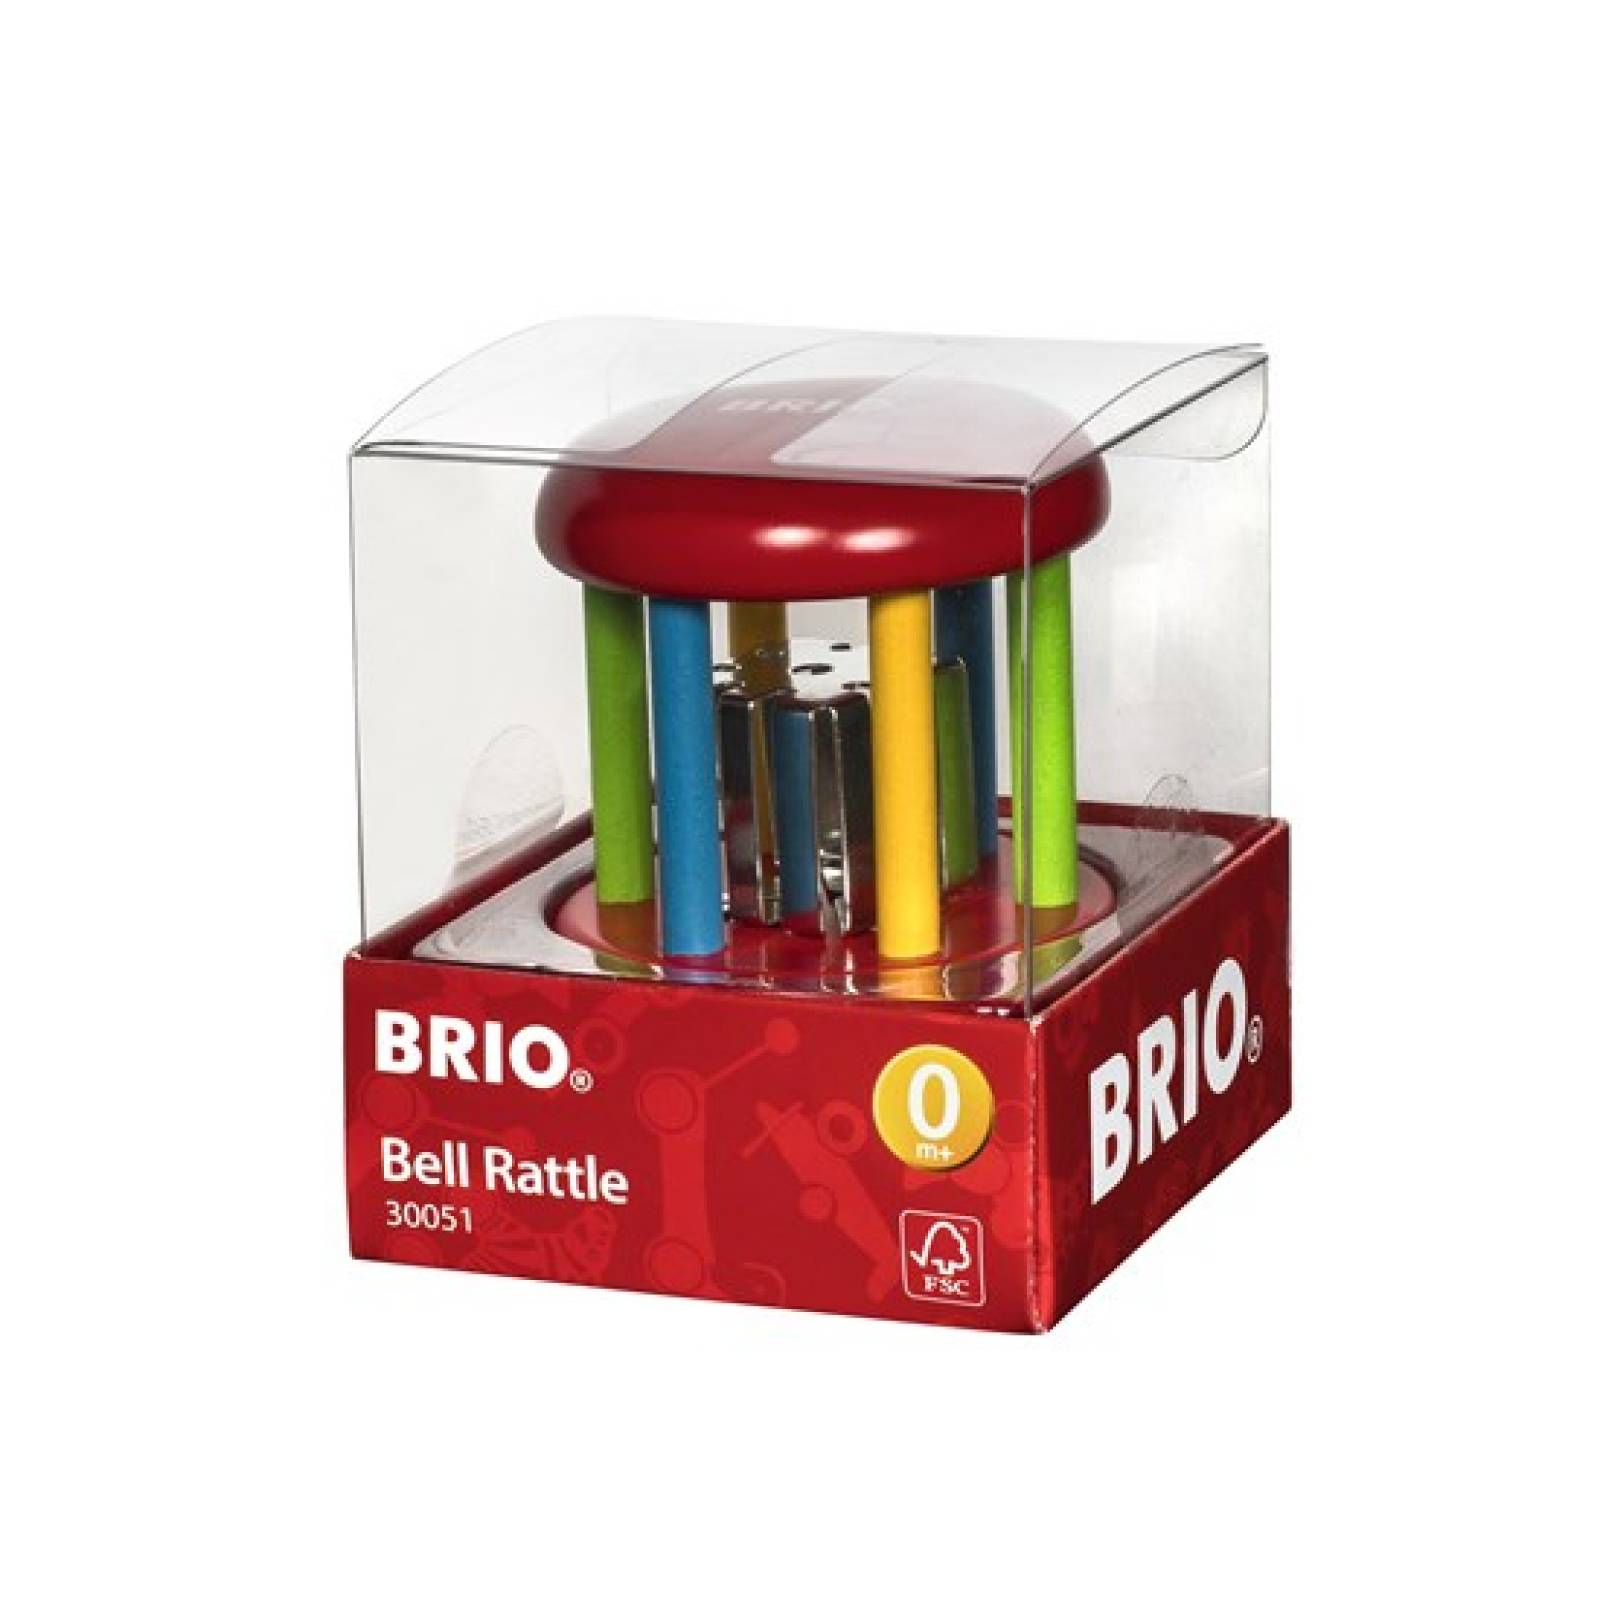 Wooden Multicolored Bell Rattle By BRIO 0+ thumbnails